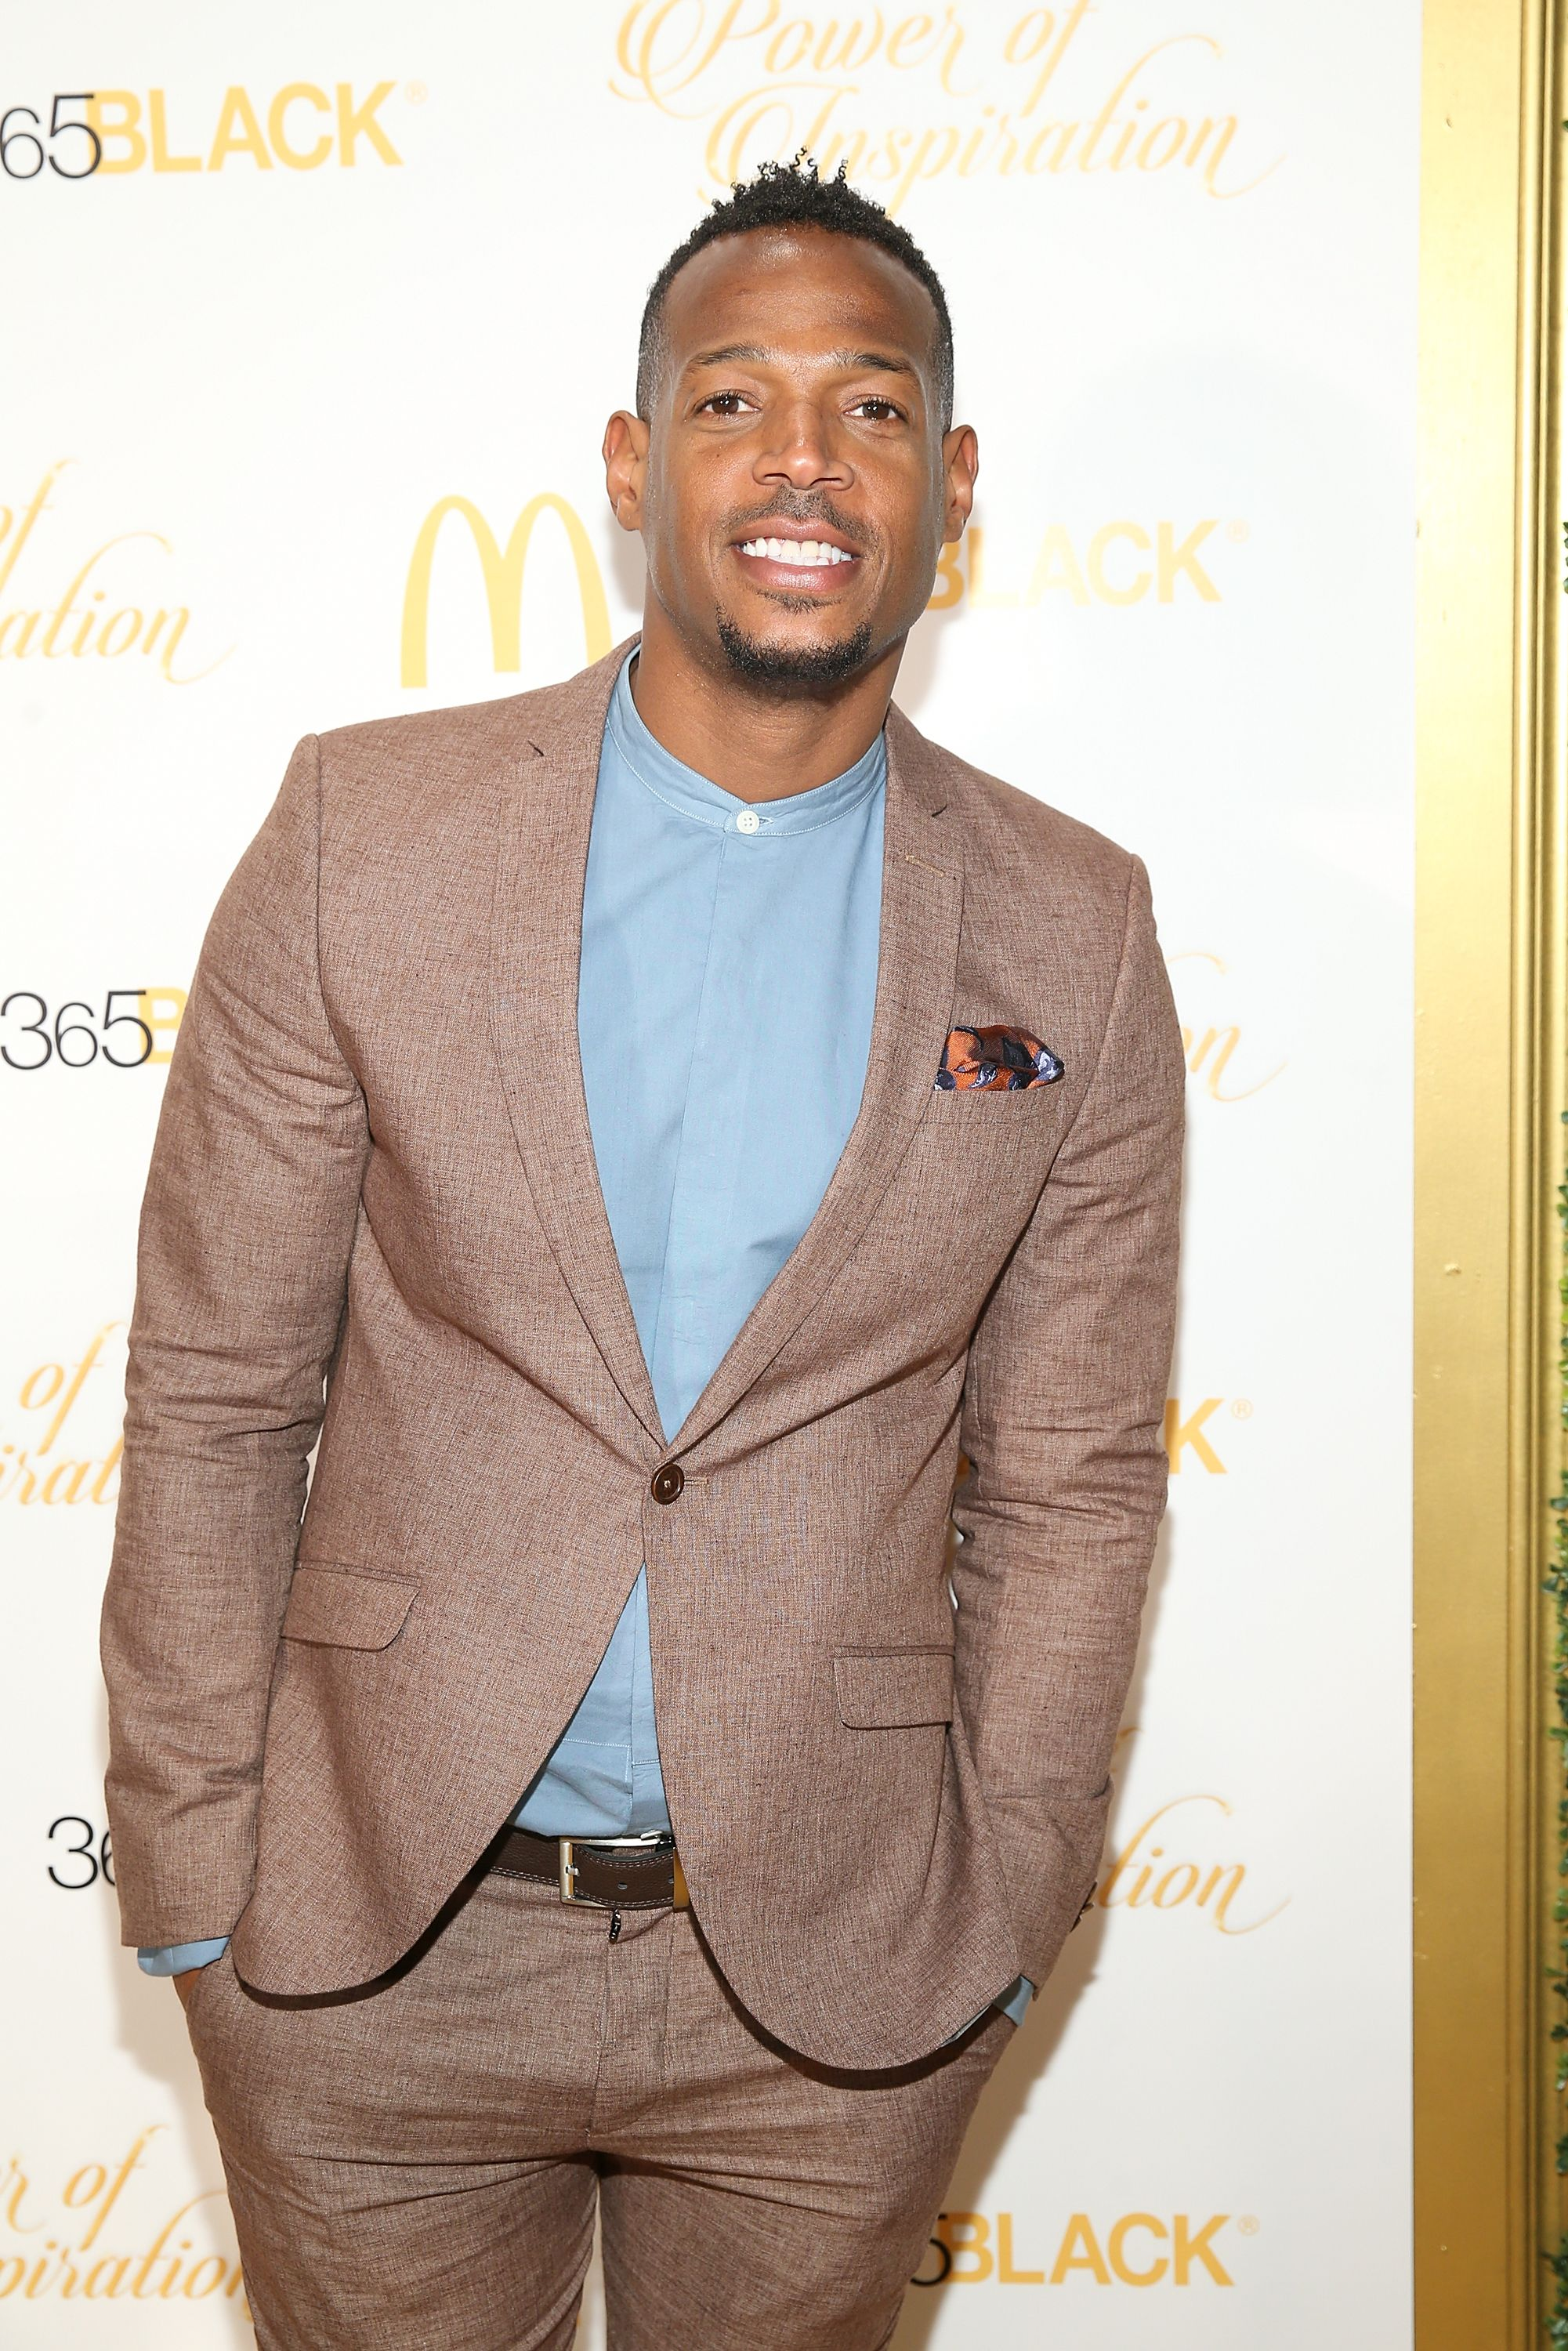 Actor Marlon Wayans at the 14th Annual McDonald's 365Black Awards at The Ritz-Carlton New Orleans on July 2, 2017 in New Orleans, Louisiana | Photo: Getty Images